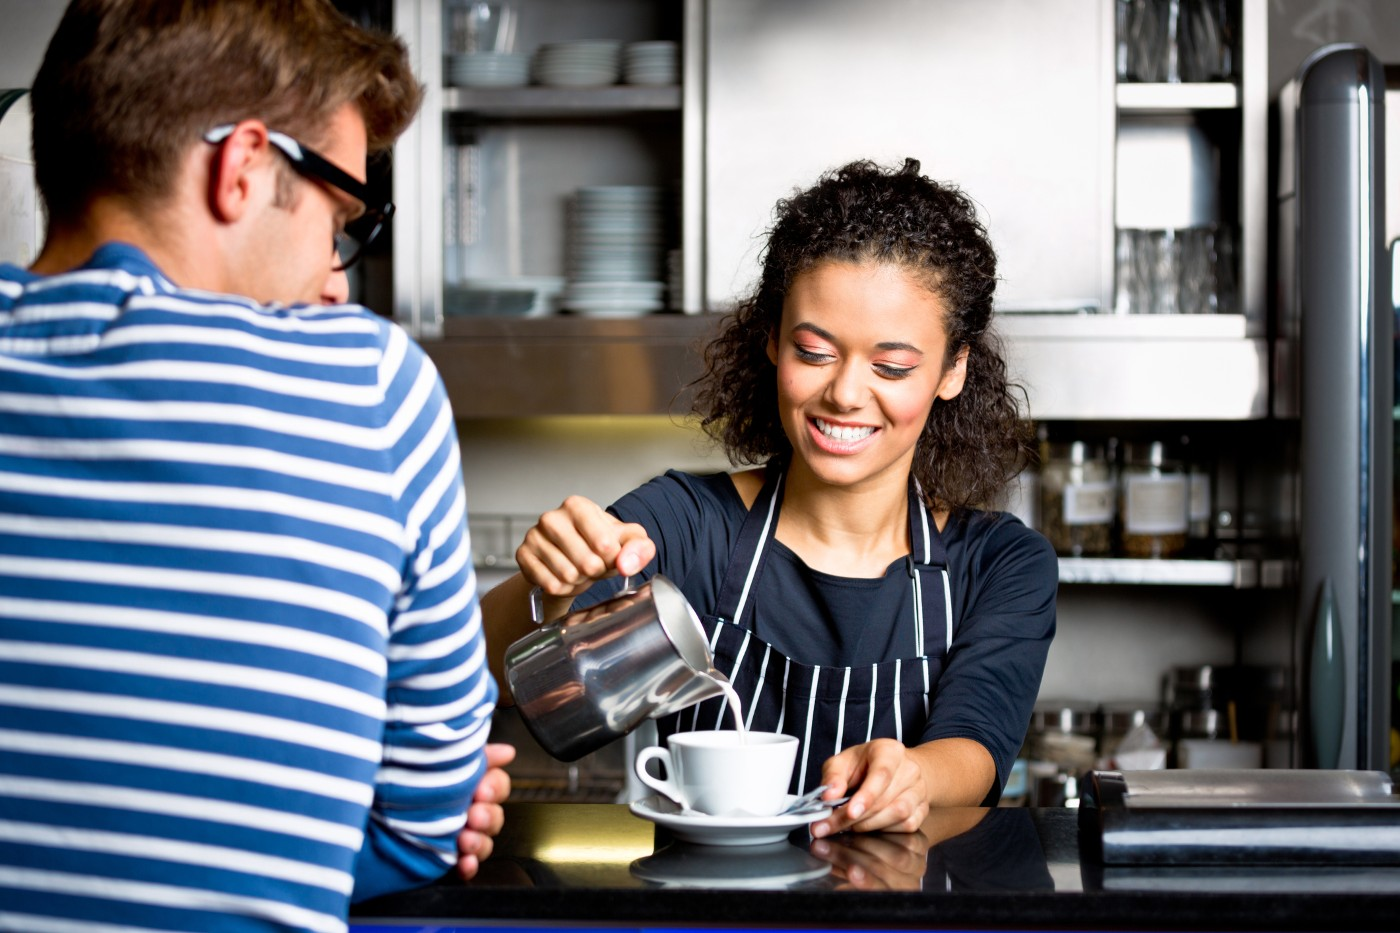 https://tickertapecdn.tdameritrade.com/assets/images/pages/md/Teen girl working as a barista: Financial lessons teens can learn from summer jobs